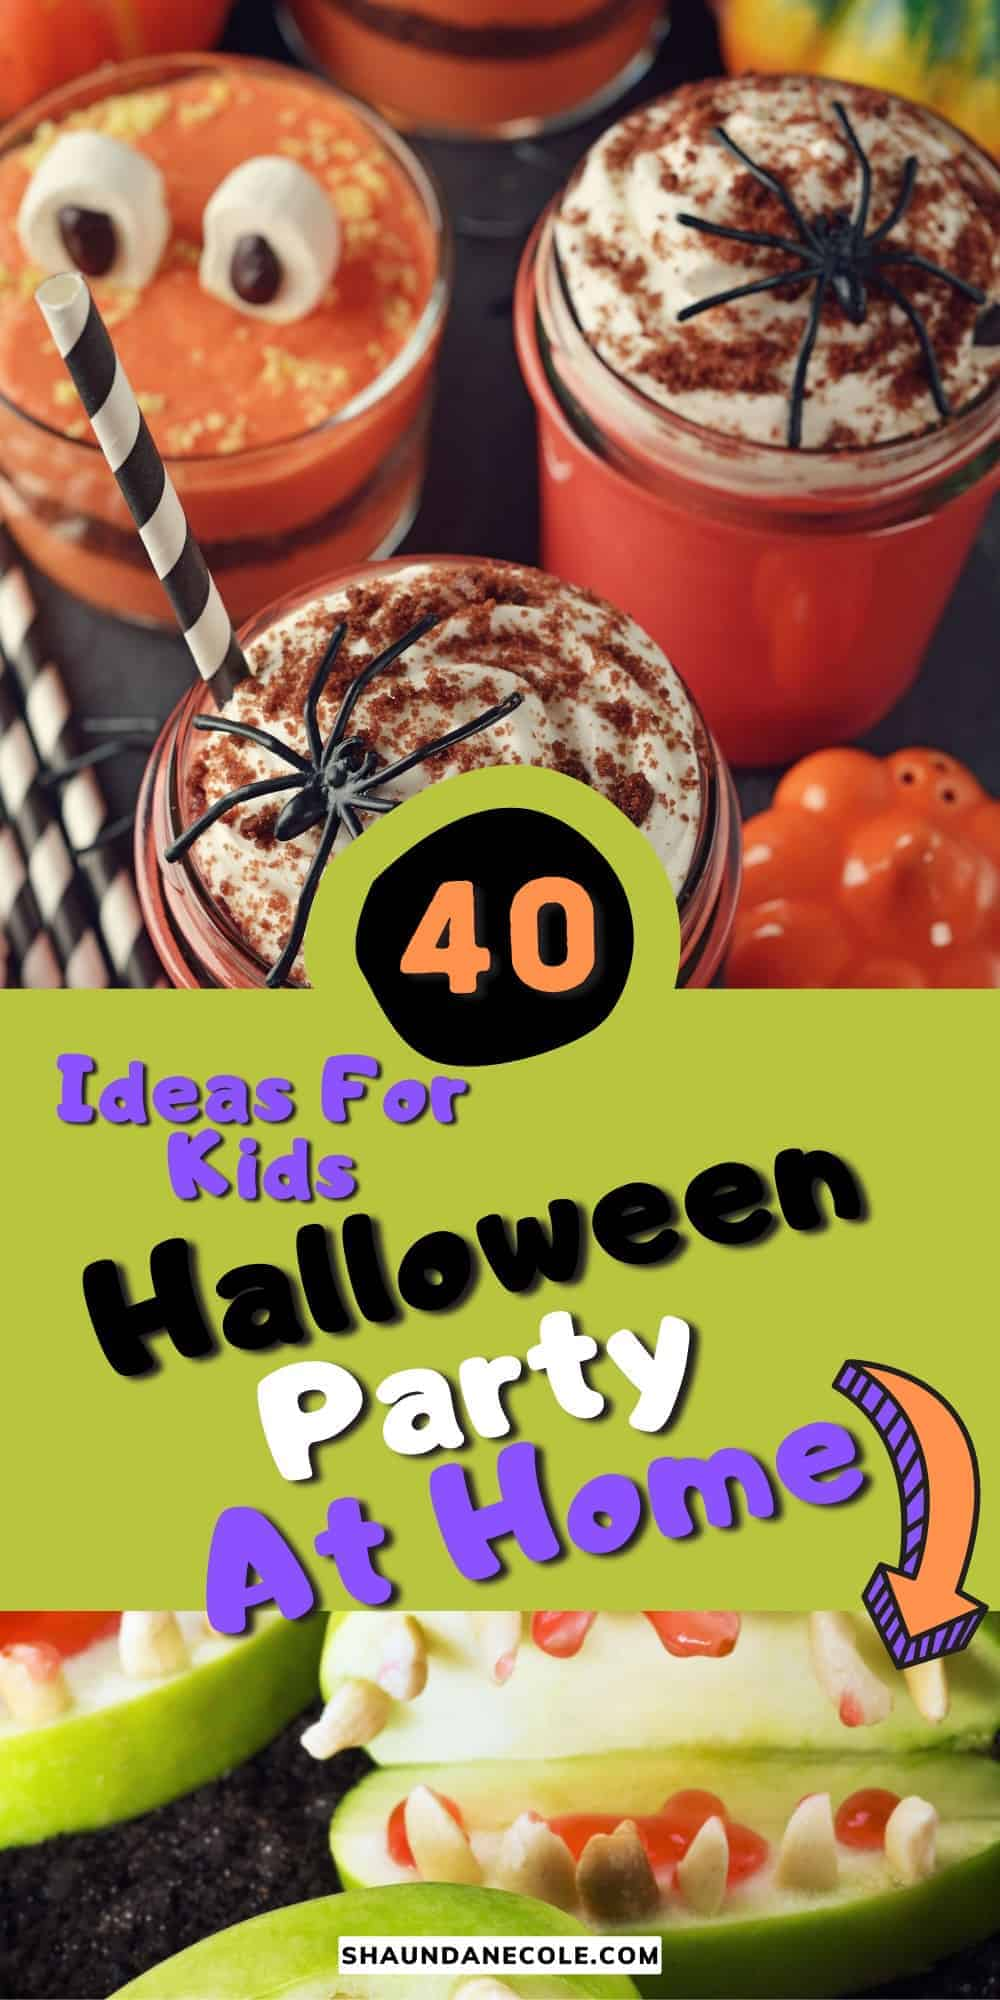 Holidays 40 Halloween Party At Home Ideas For Kids, Easy DIY Halloween Treats, Food Ideas For Dinner